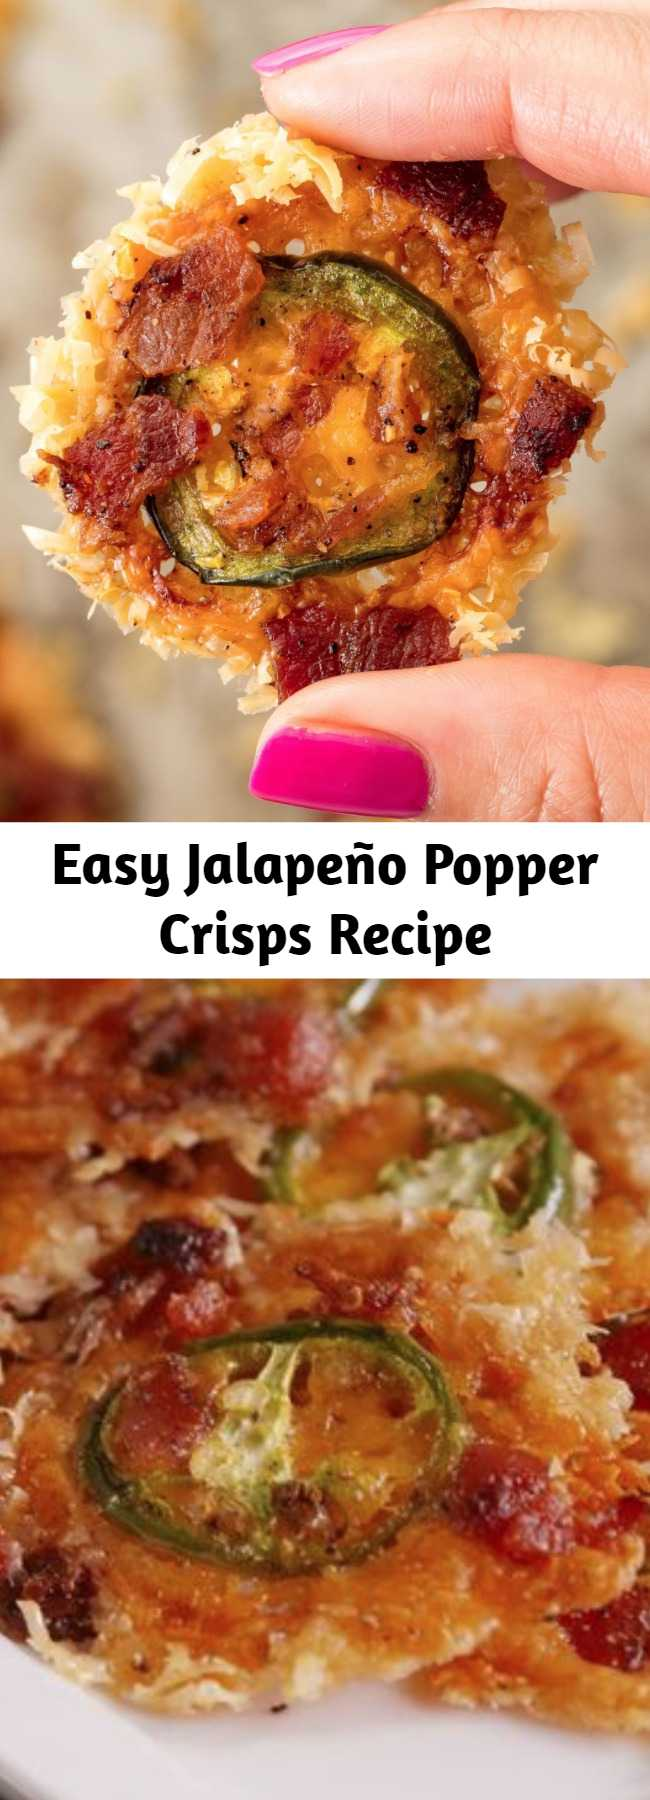 Easy Jalapeño Popper Crisps Recipe - Our three favorite flavors: spicy, cheesy, and... bacon-y. #jalapeno #easy #recipe #popper #lowcarb #healthy #jalapenopopper #cheese #bacon #glutenfree